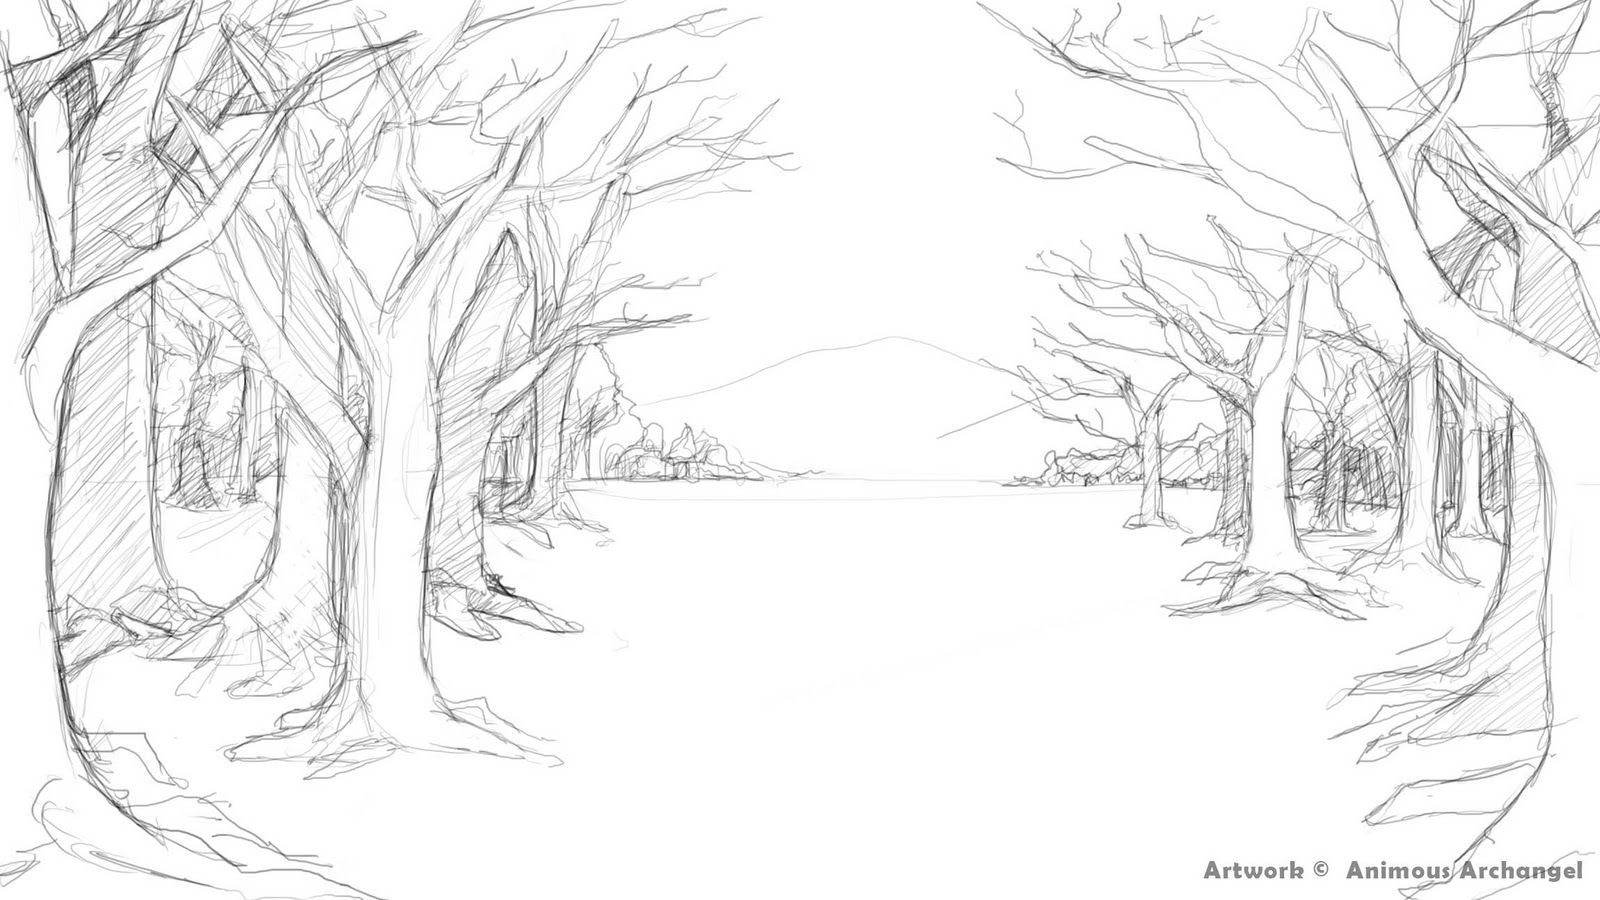 Free coloring pages of scenery drawings landscape for Sketch online free